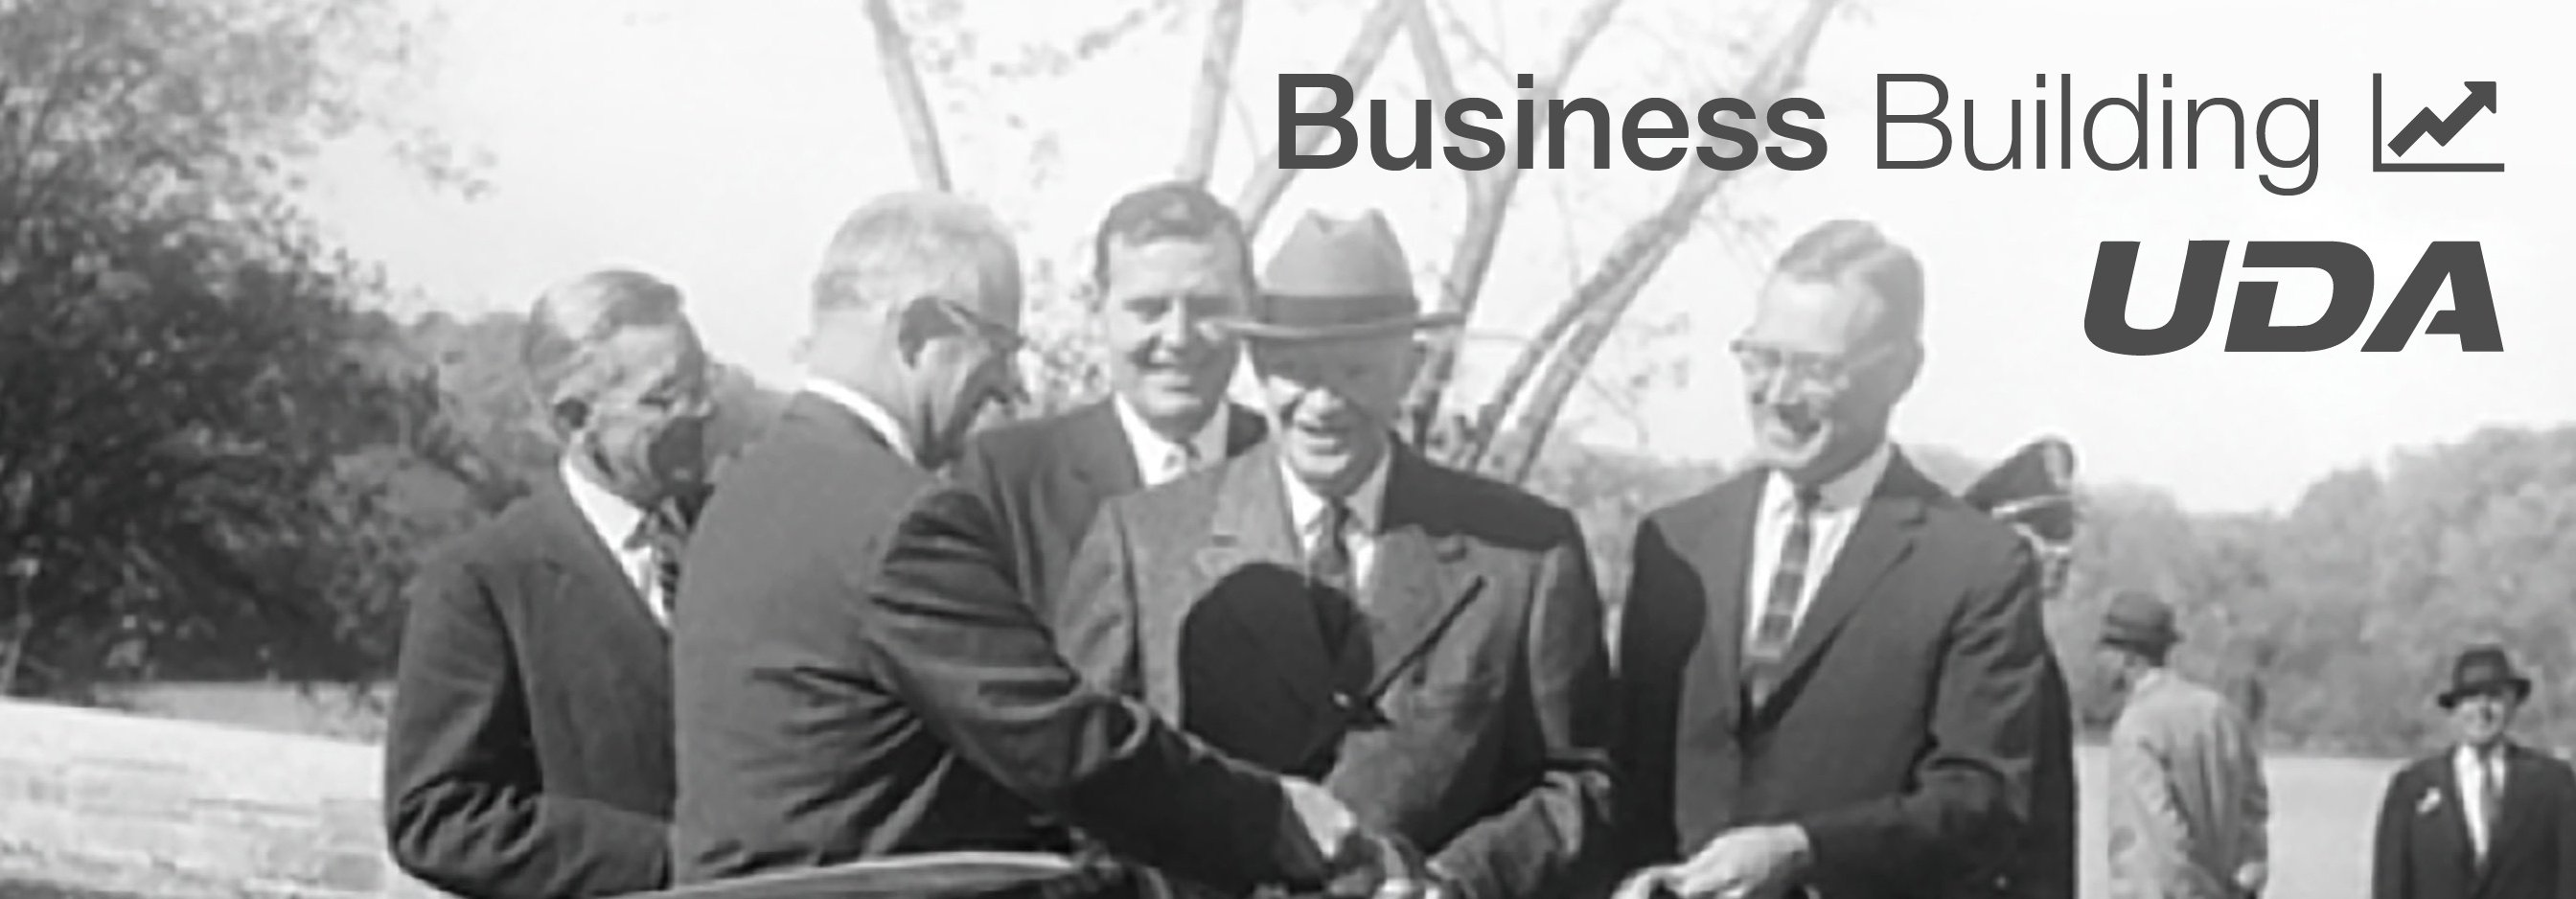 3 Things Construction Project Managers Should Prioritize, According to President Eisenhower